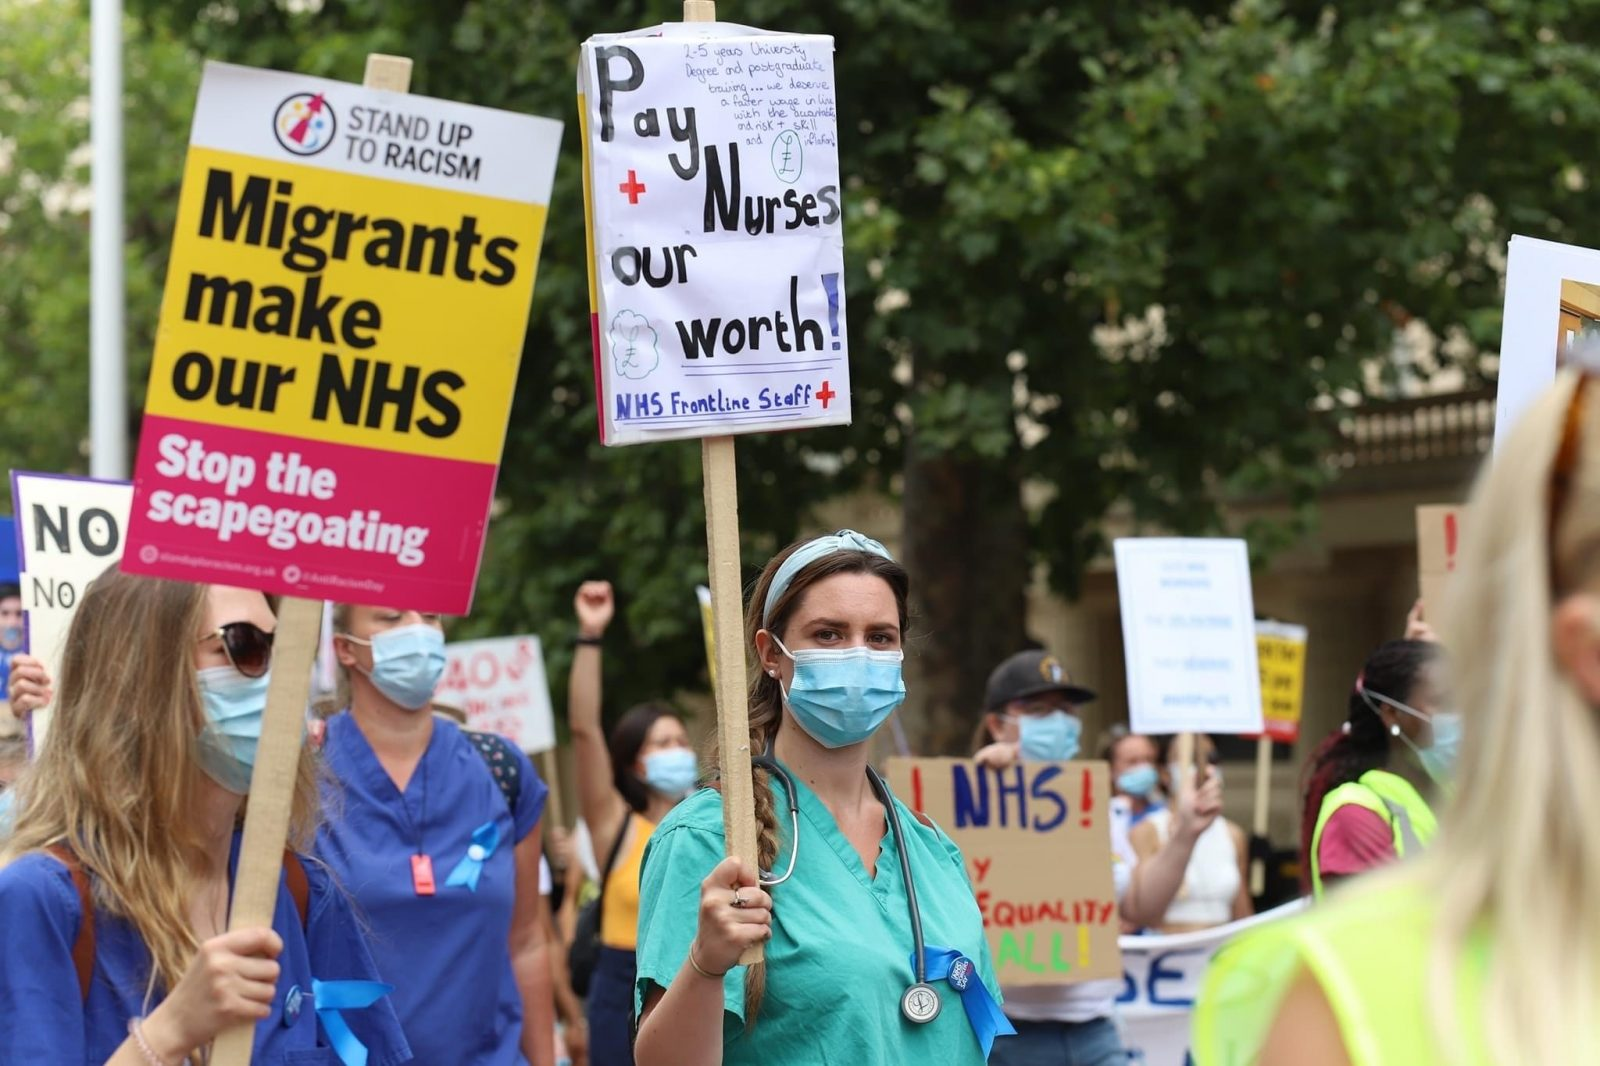 Salary increase for NHS staff more than the proposed 1%